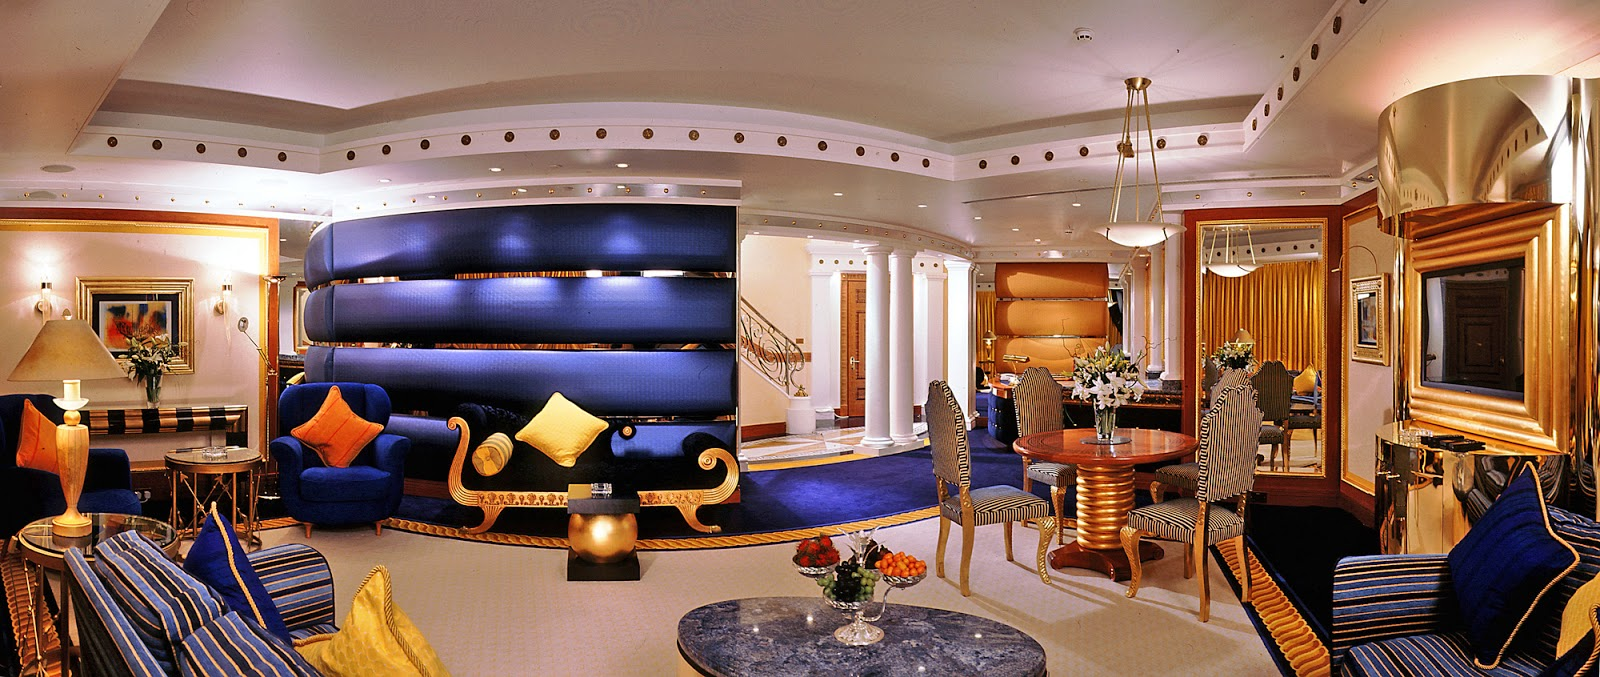 Burj al arab suite luxury hotel in dubai travel review for Most expensive suite in dubai